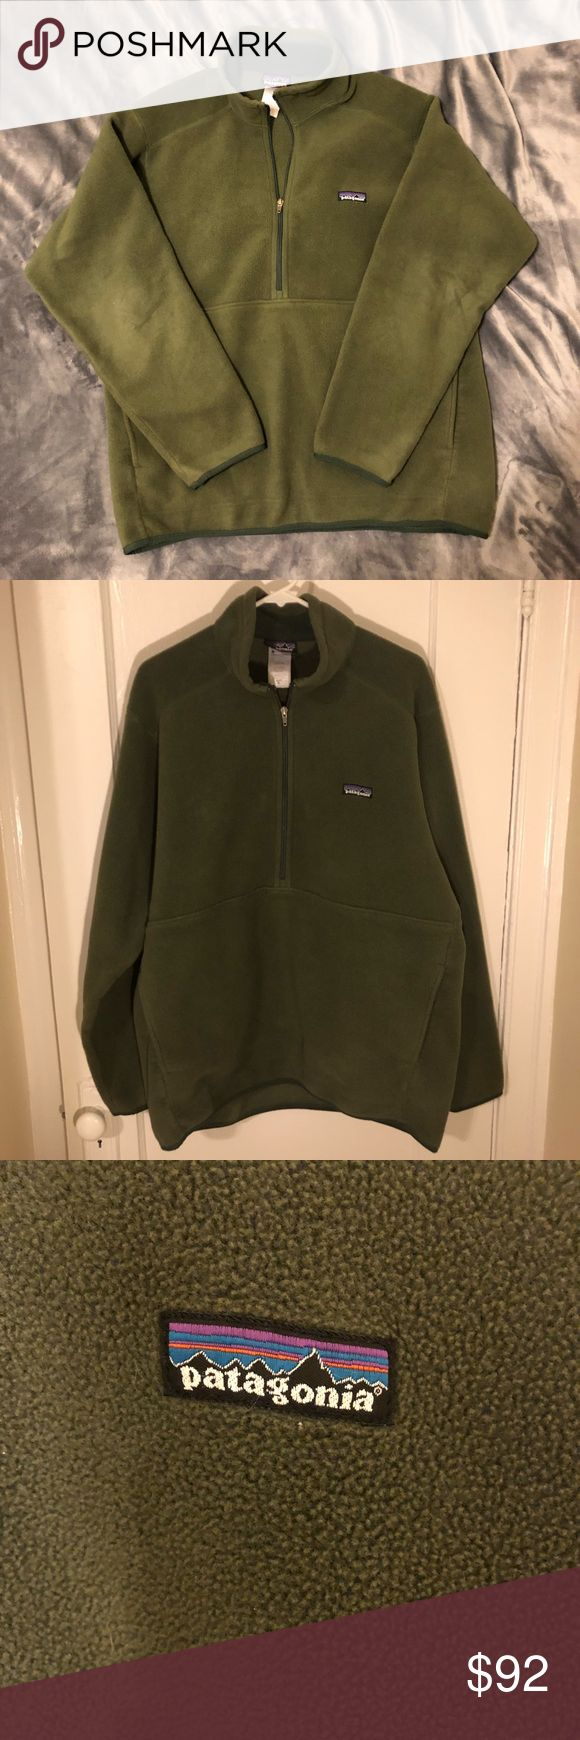 Patagonia Synchilla Army Green Men's XL Half Zip Awesome men's XL Patagonia synchilla half zip sweater jacket. Army green color. Kangaroo pocket in front. Great used condition. No holes or tears. Some love on the elbows. All offers considered! Patagonia Sweaters